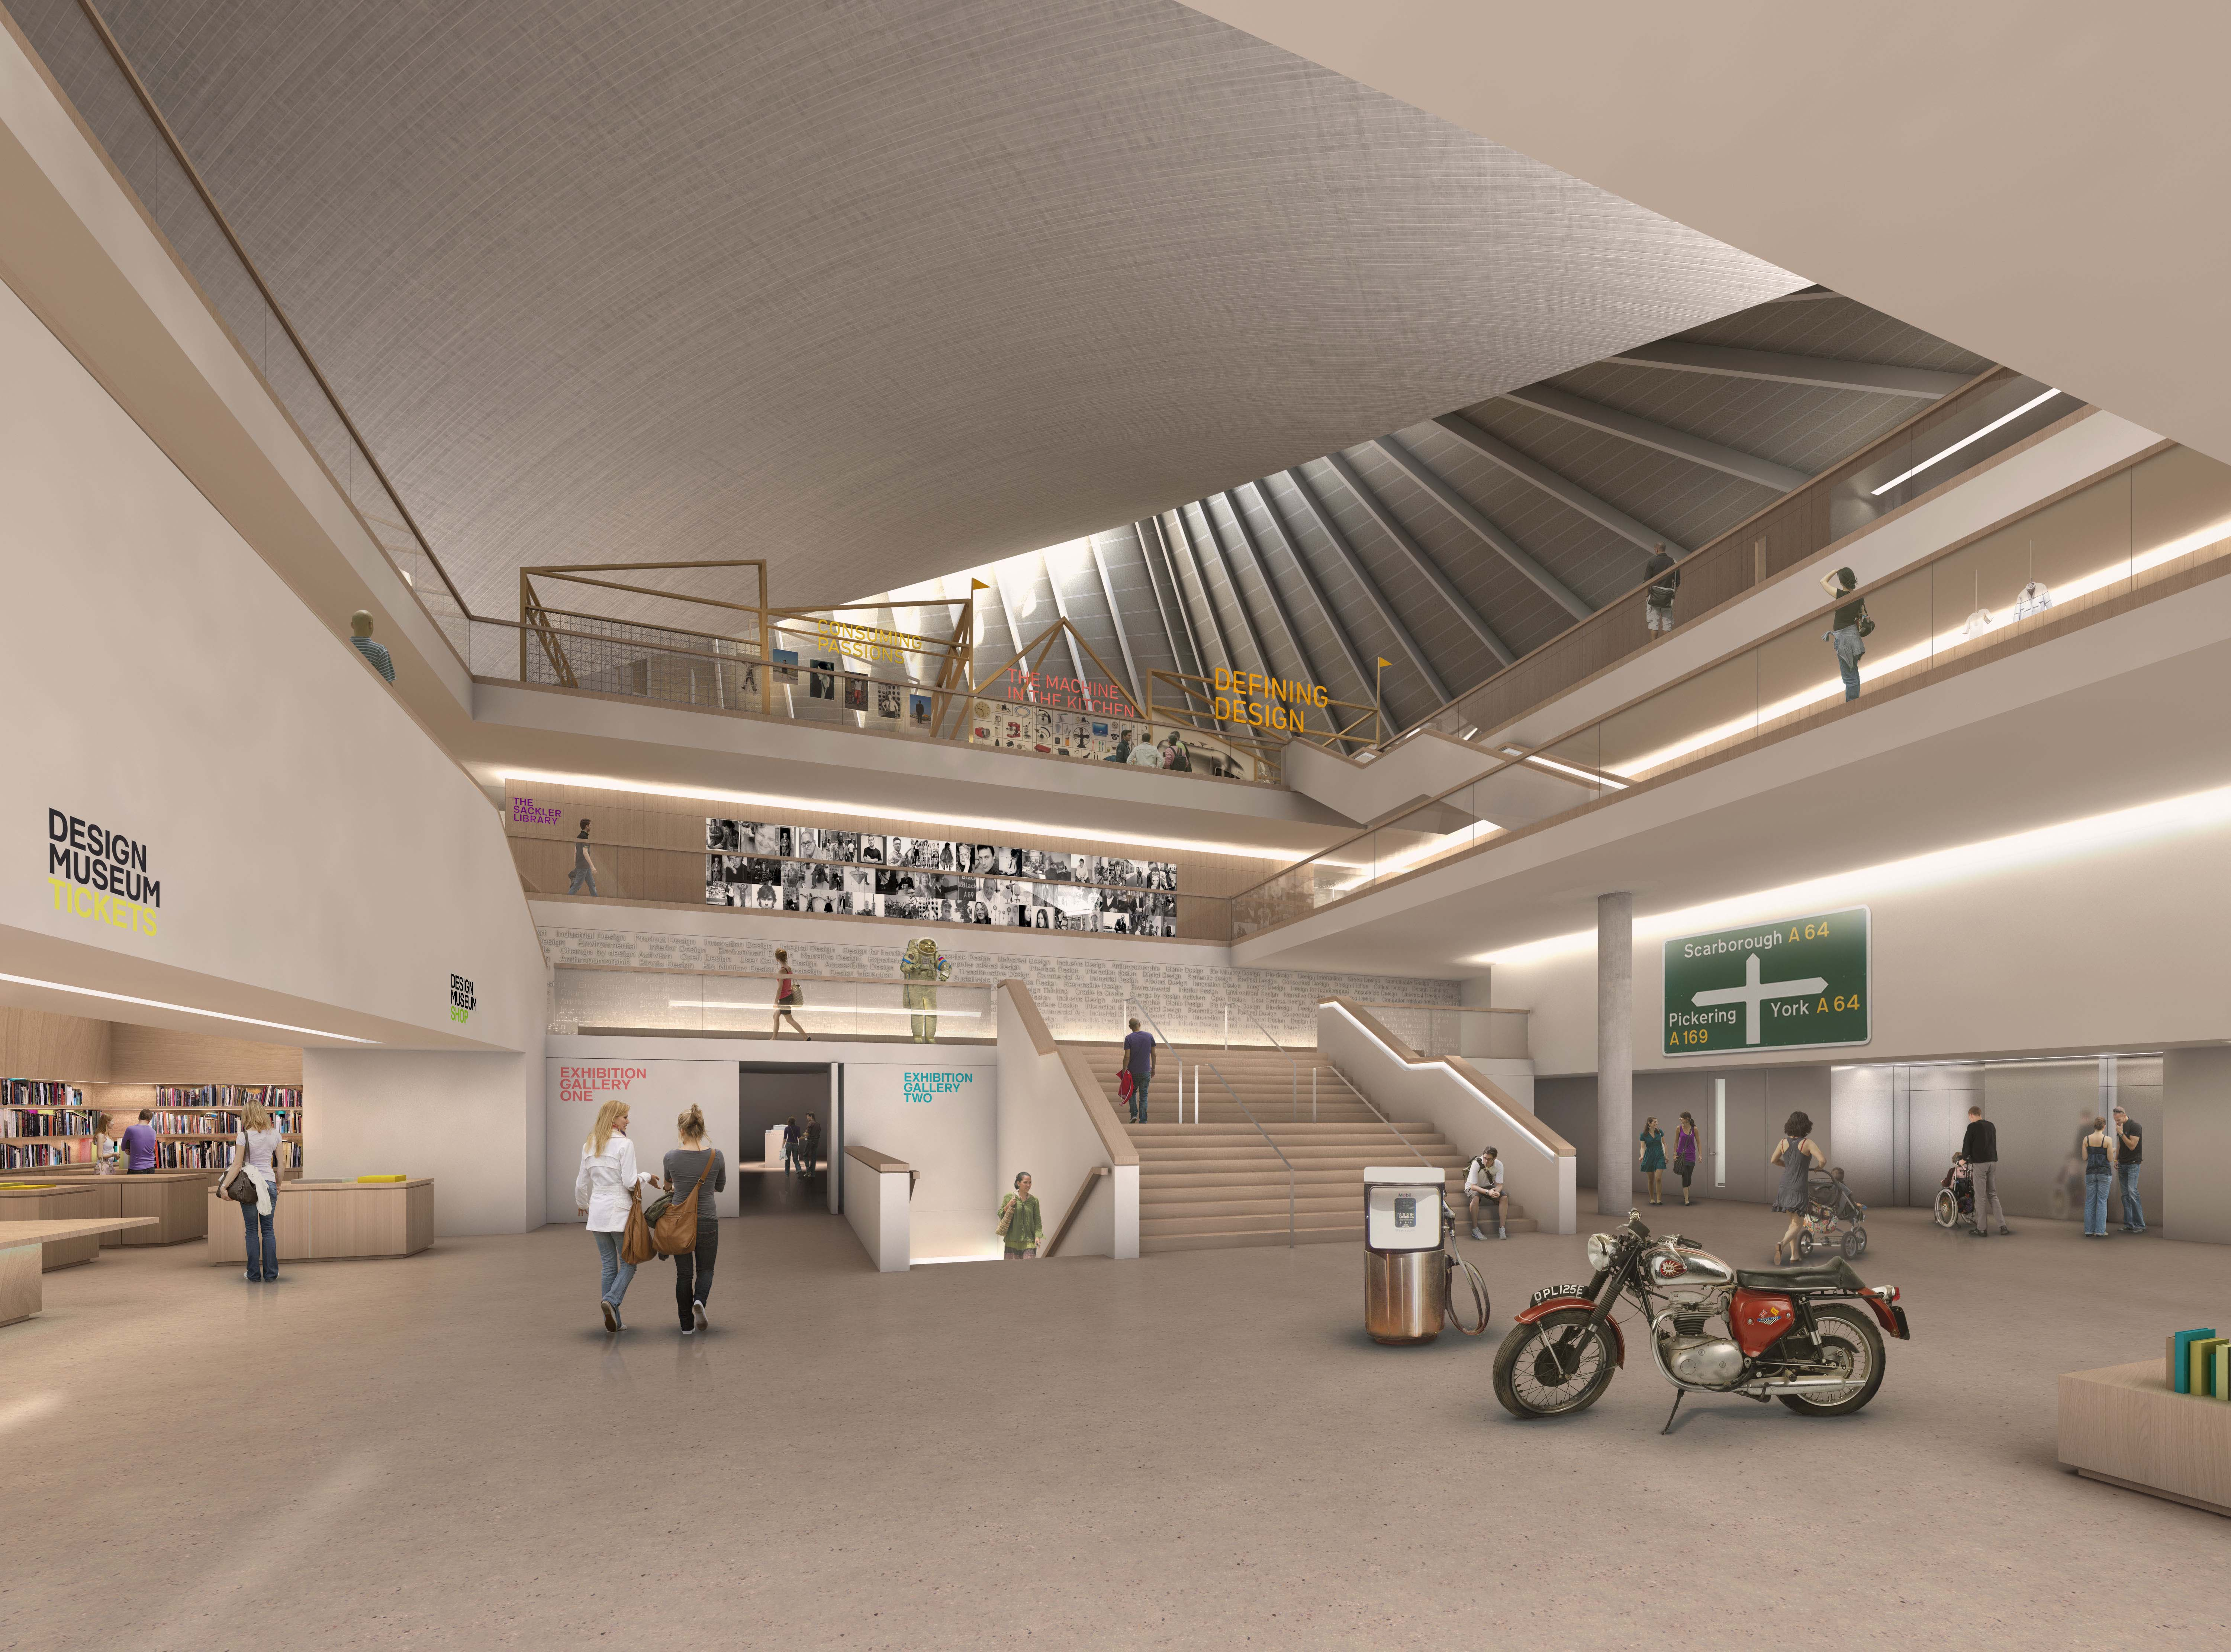 New Design Museum, Entrance Foyer. John Pawson Ltd Image by Alex Morris Visualisation